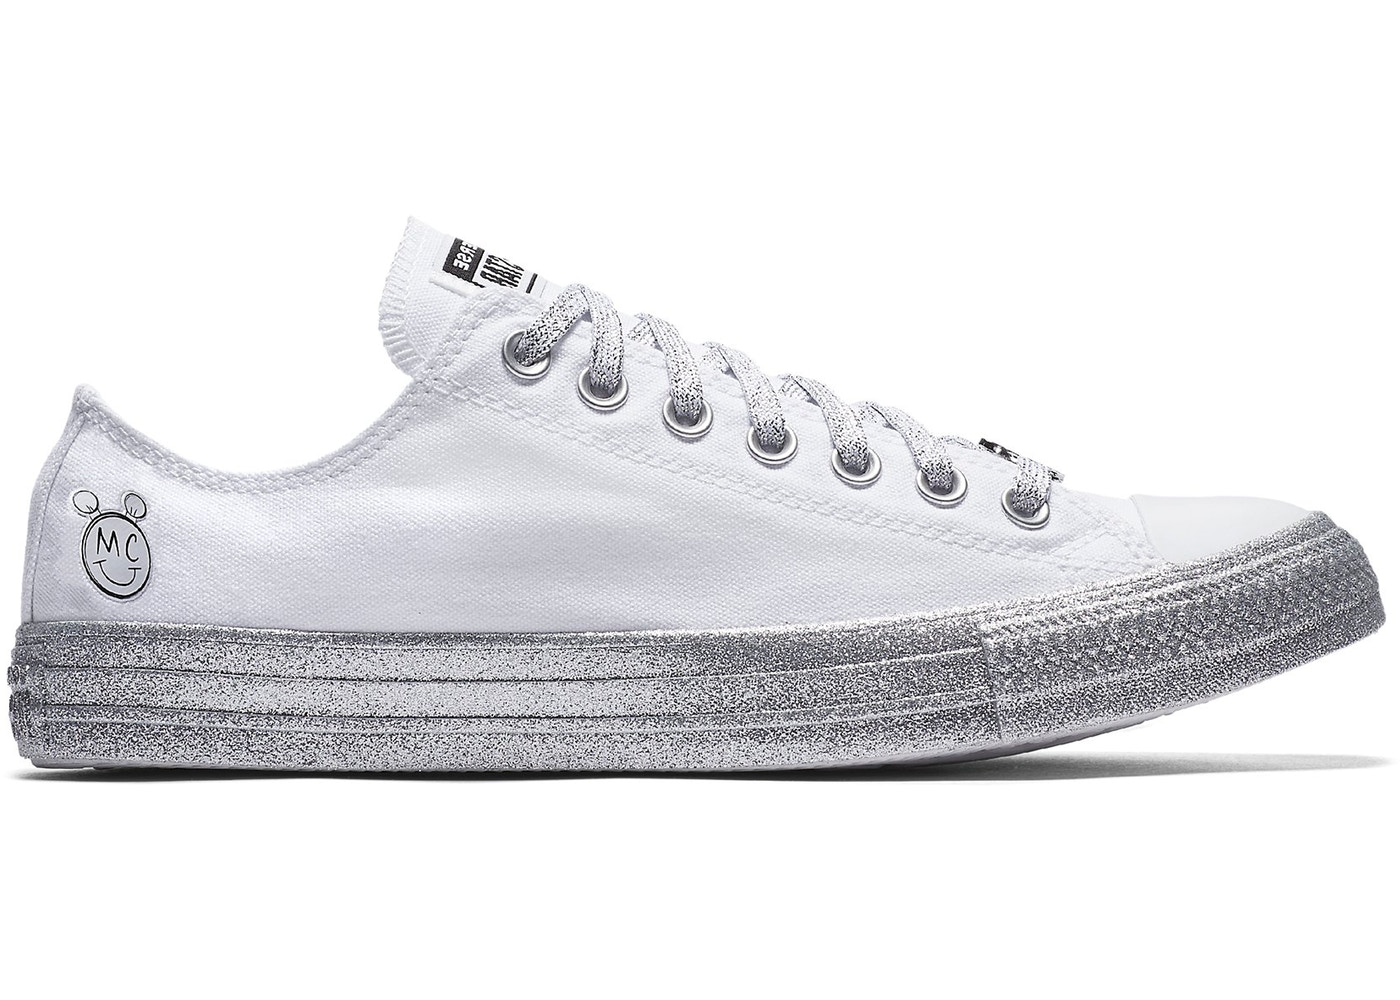 50e88f889a Converse Chuck Taylor All-Star Low Miley Cyrus White Silver — HypeAnalyzer